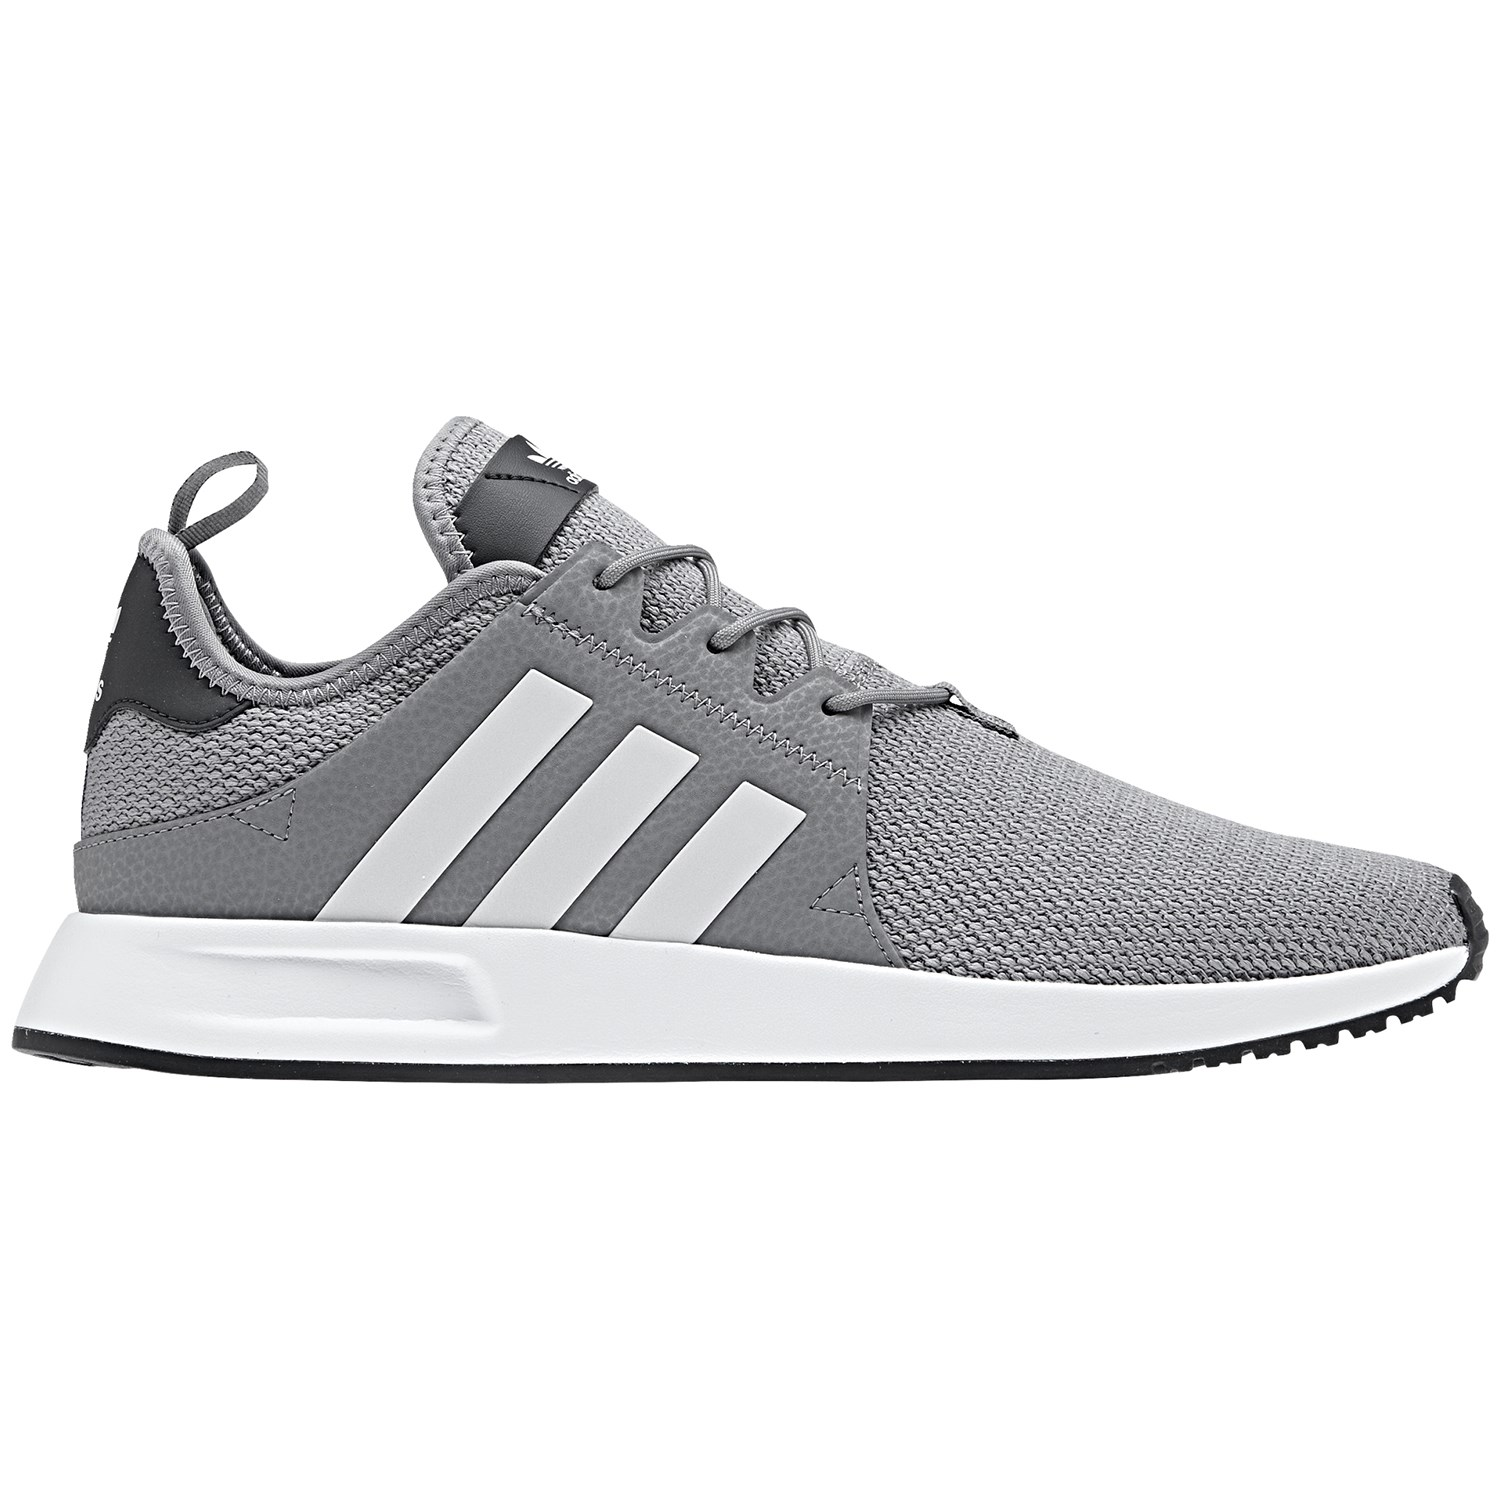 Adidas Originals X PLR Shoes $93.50